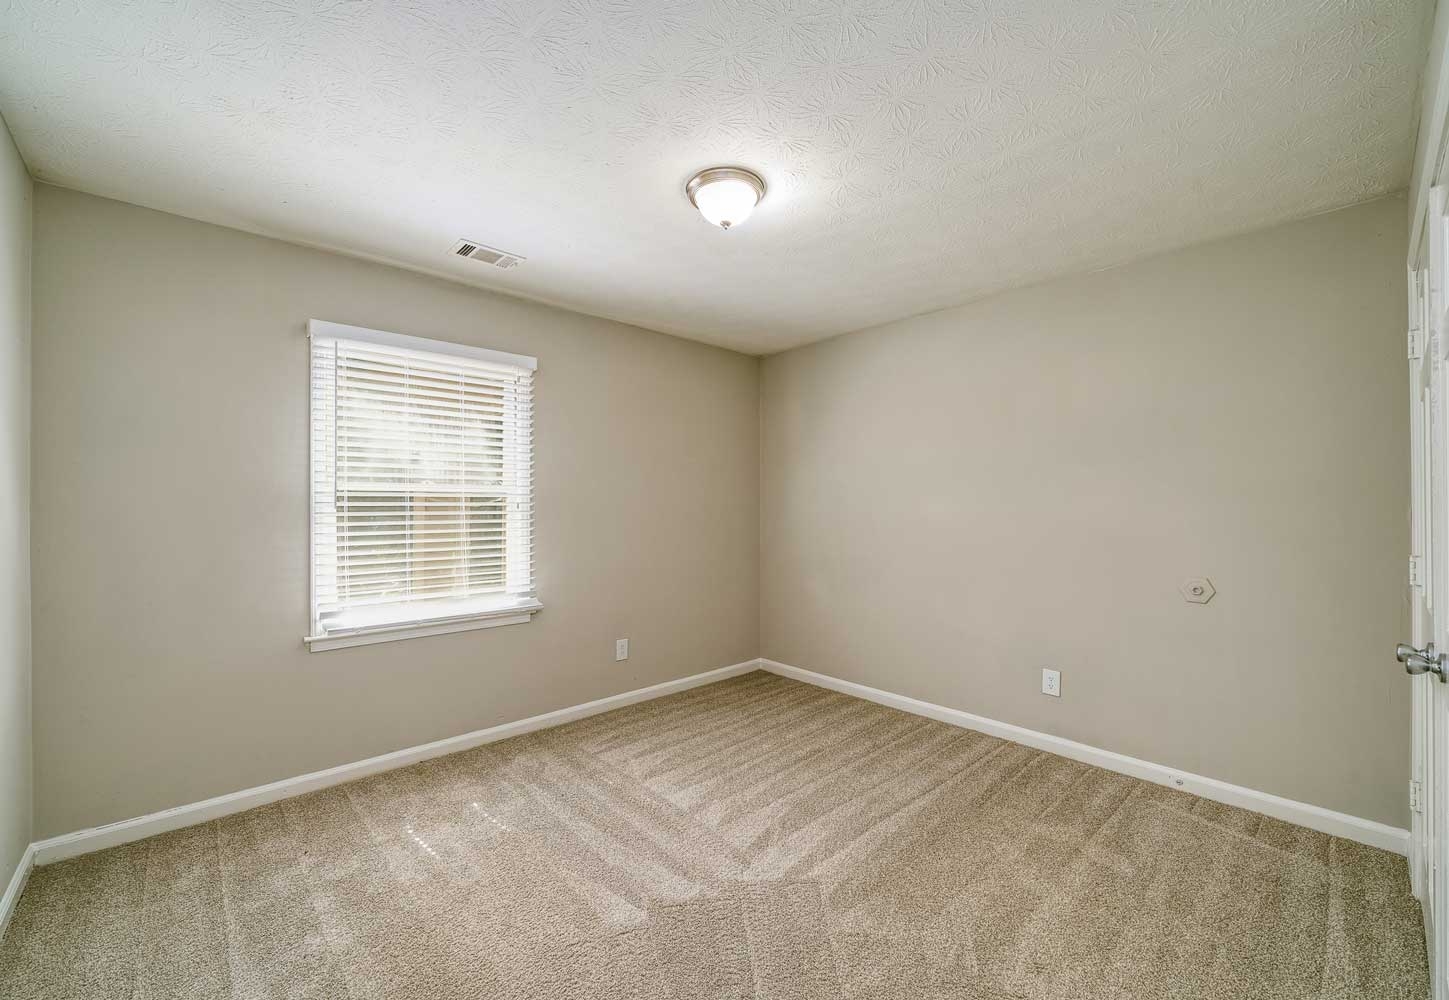 Carpeted Flooring at Tall Oaks Apartments and Villas in Conyers, GA